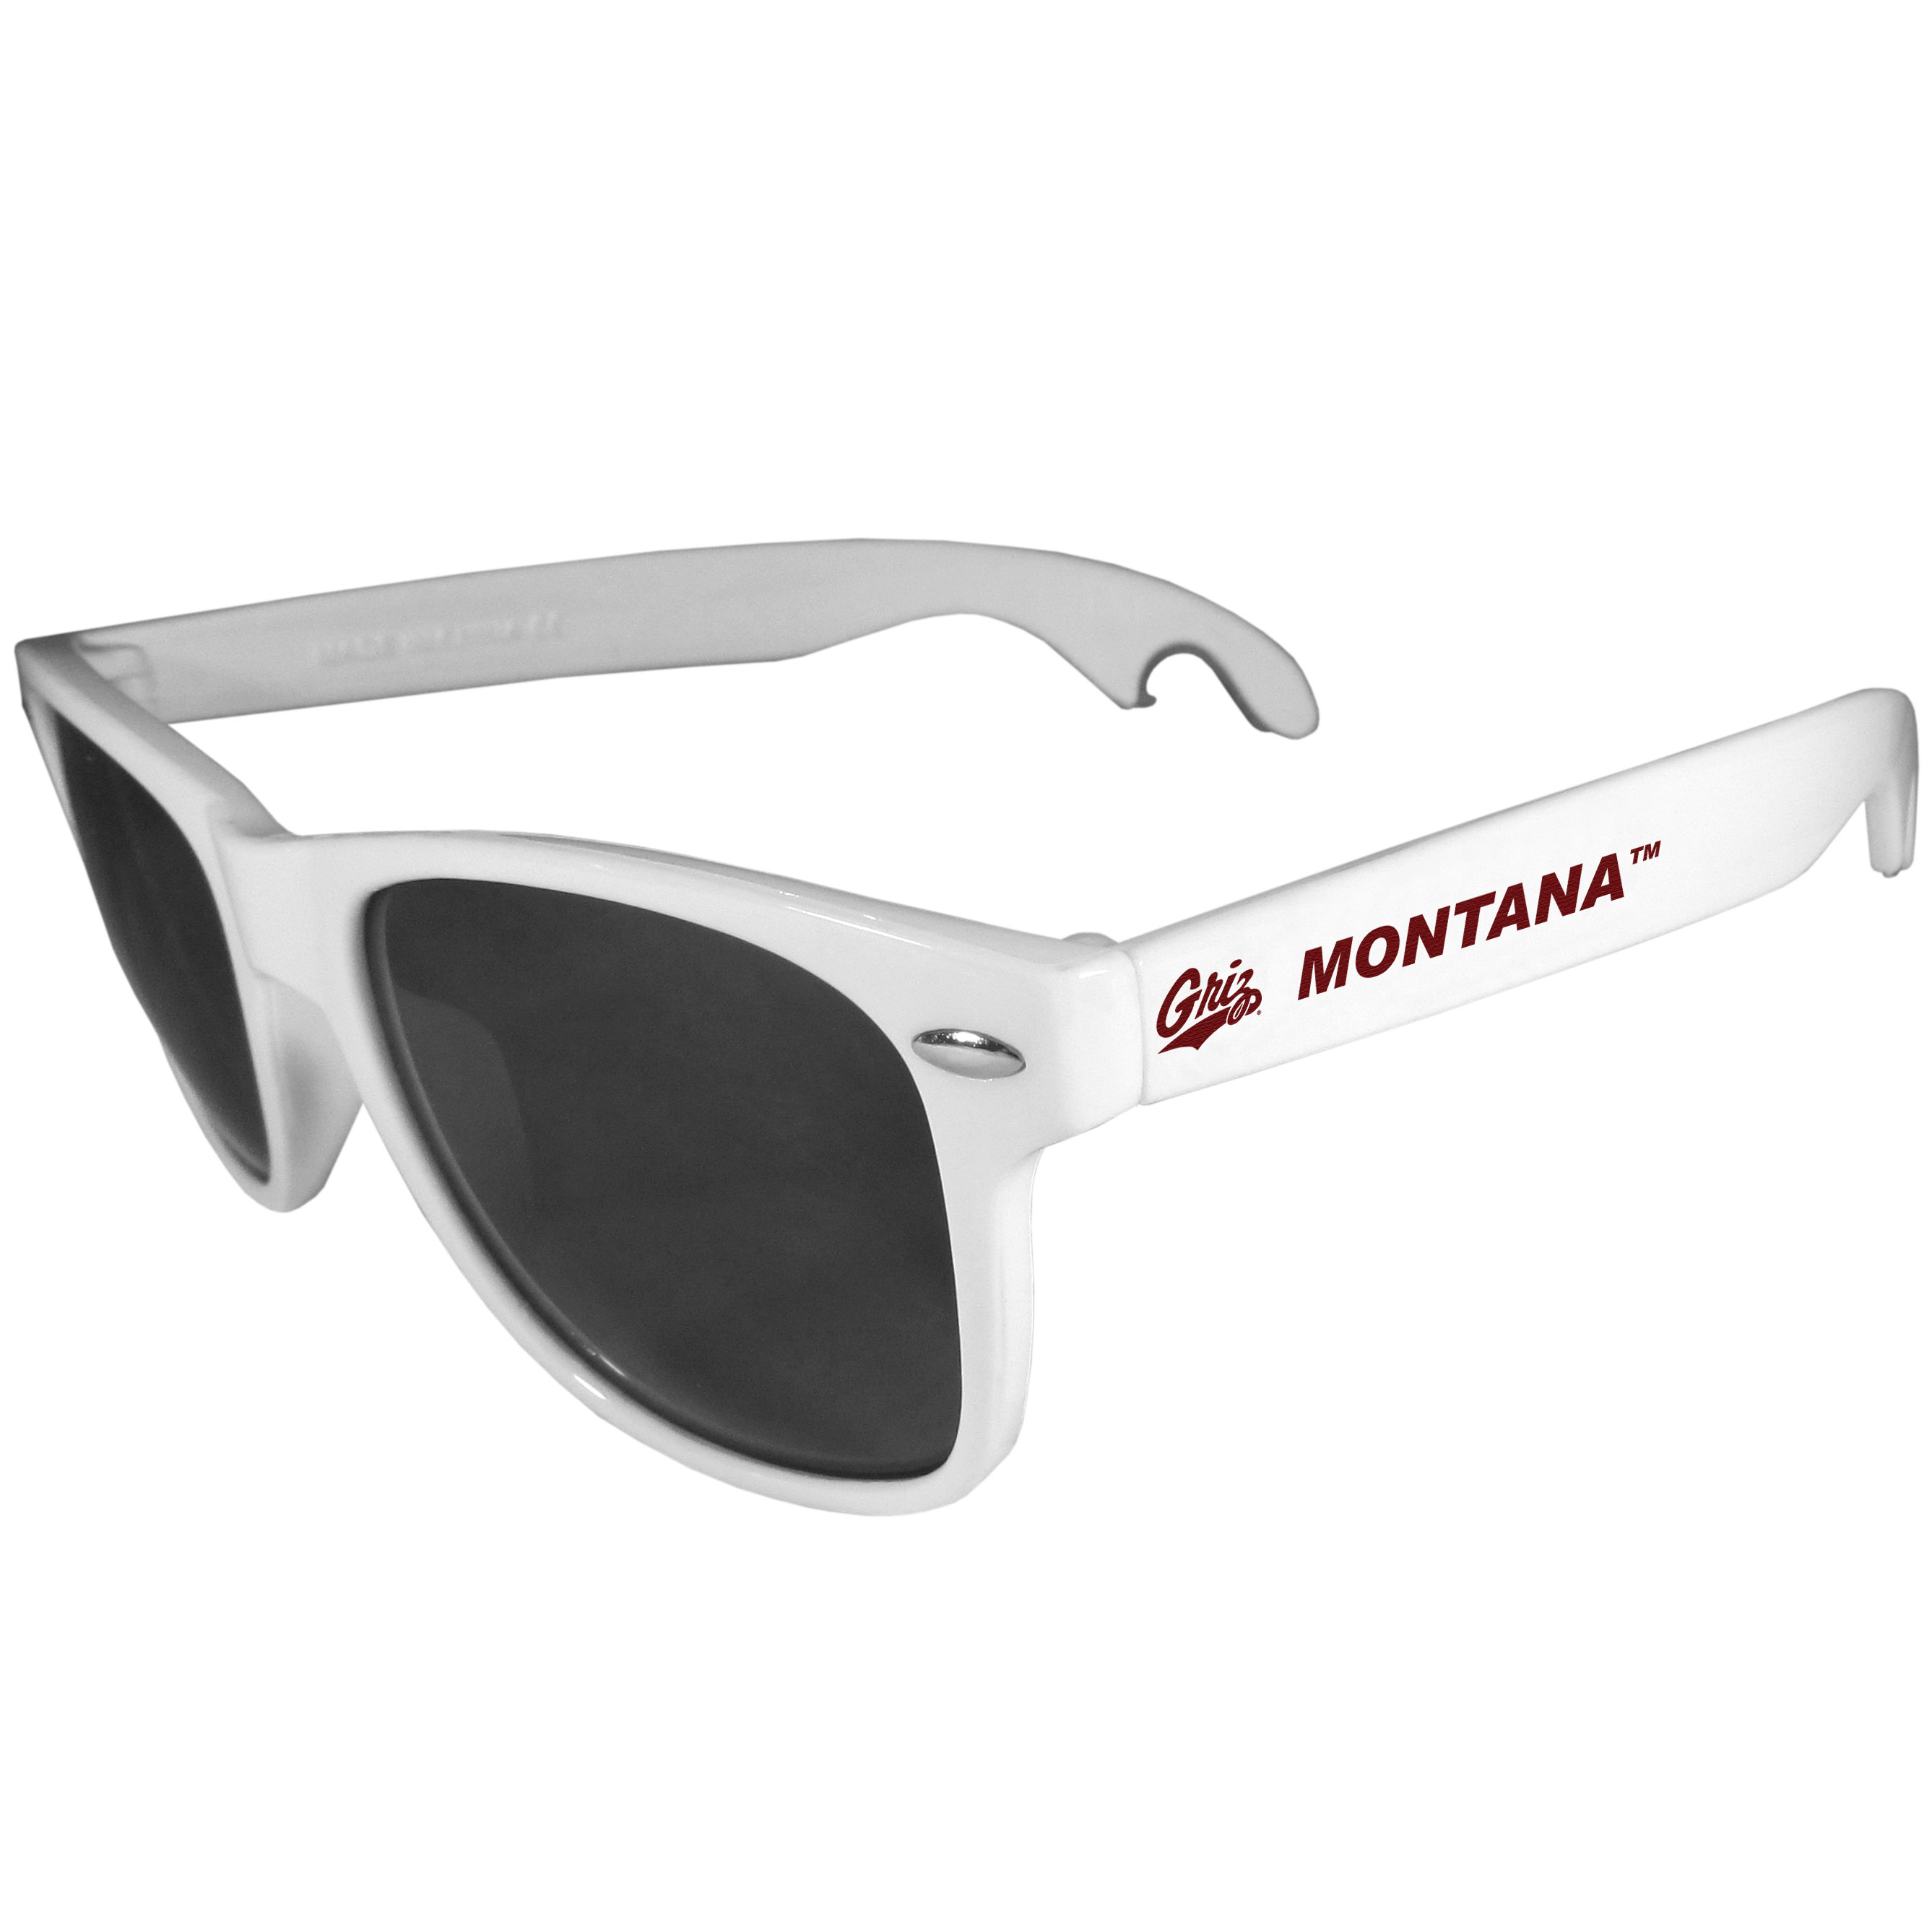 Montana Grizzlies Beachfarer Bottle Opener Sunglasses, White - Seriously, these sunglasses open bottles! Keep the party going with these amazing Montana Grizzlies bottle opener sunglasses. The stylish retro frames feature team designs on the arms and functional bottle openers on the end of the arms. Whether you are at the beach or having a backyard BBQ on game day, these shades will keep your eyes protected with 100% UVA/UVB protection and keep you hydrated with the handy bottle opener arms.